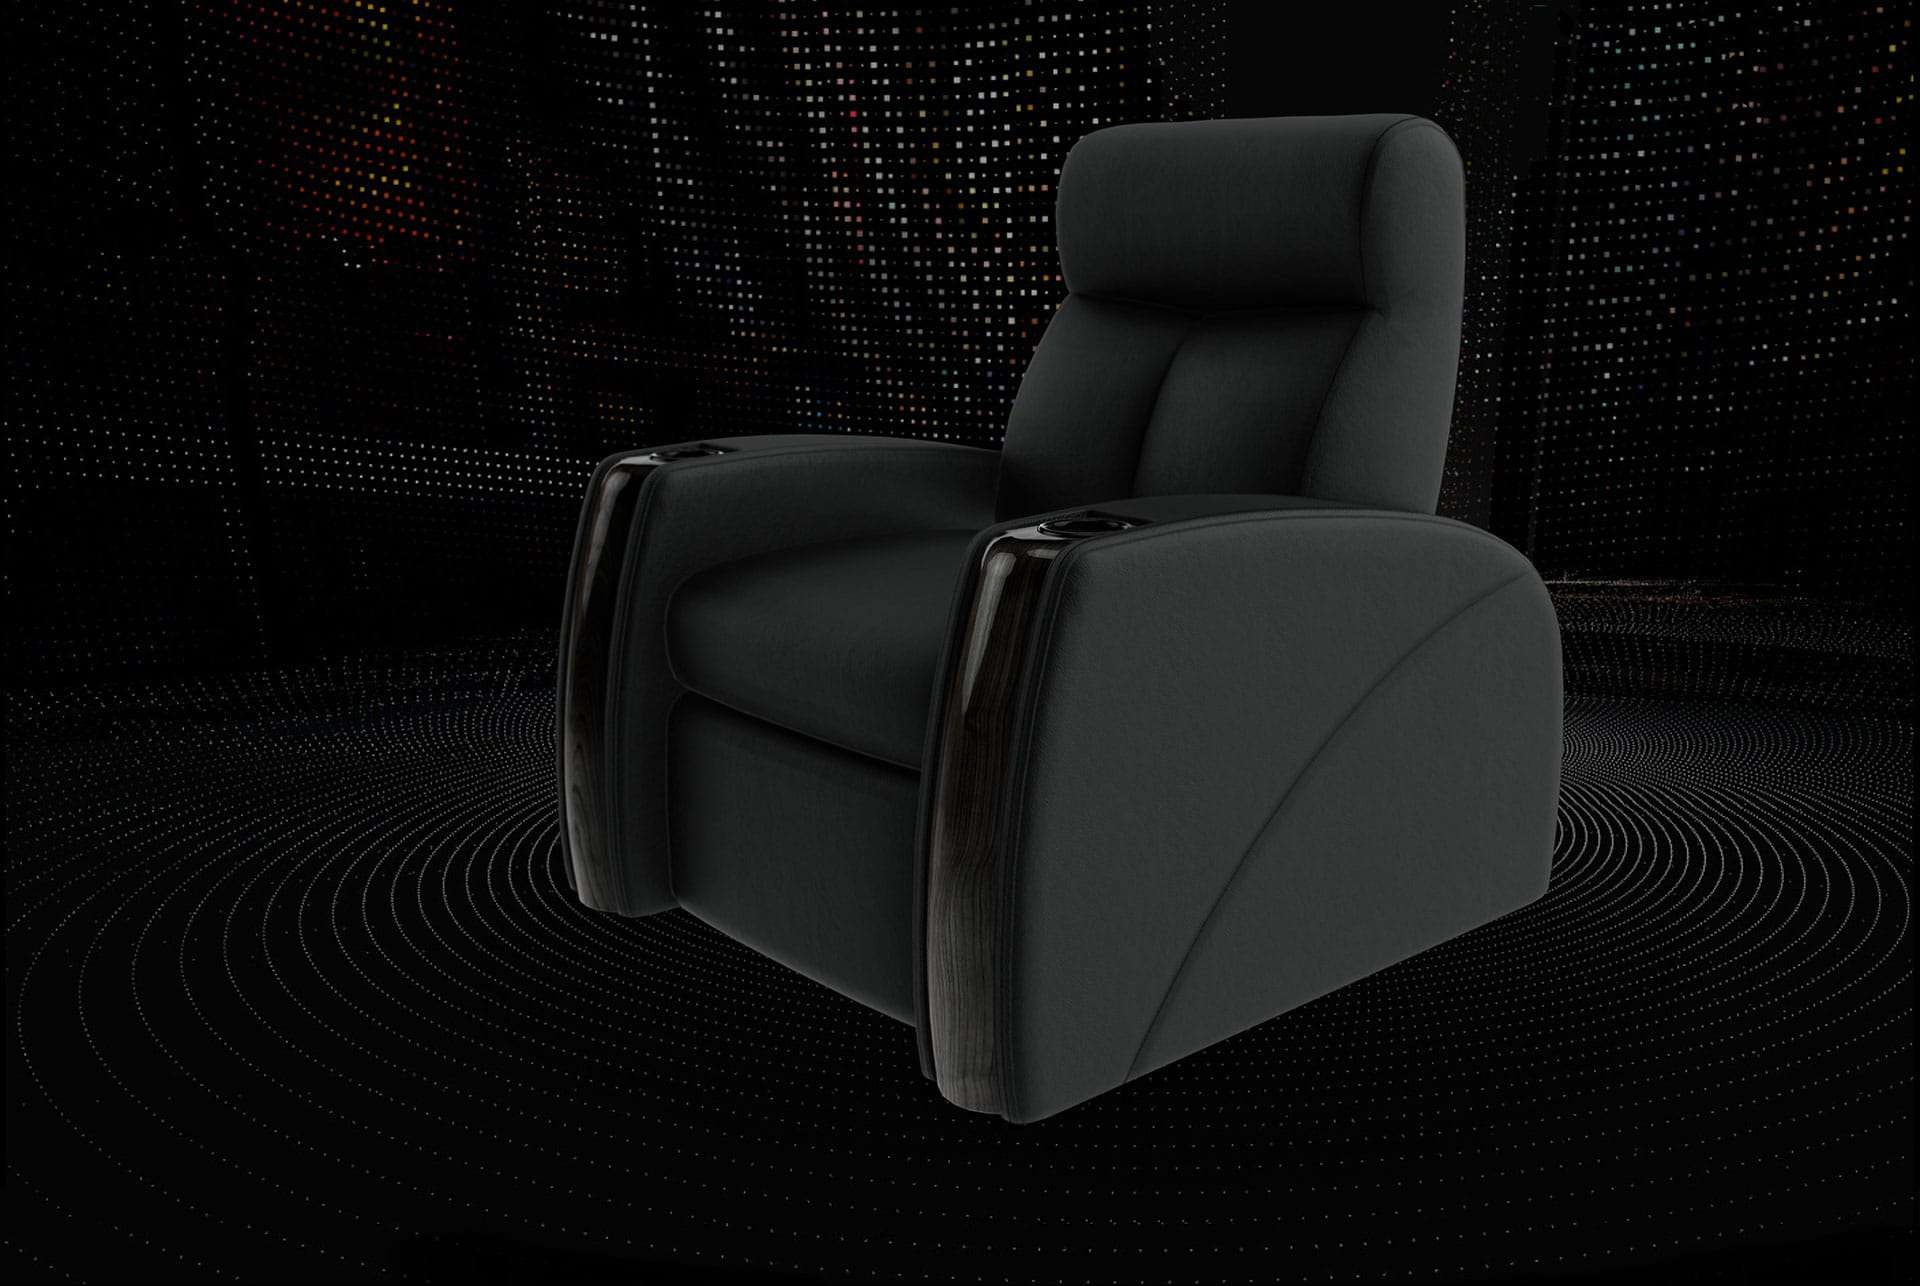 Home theater chairs black style